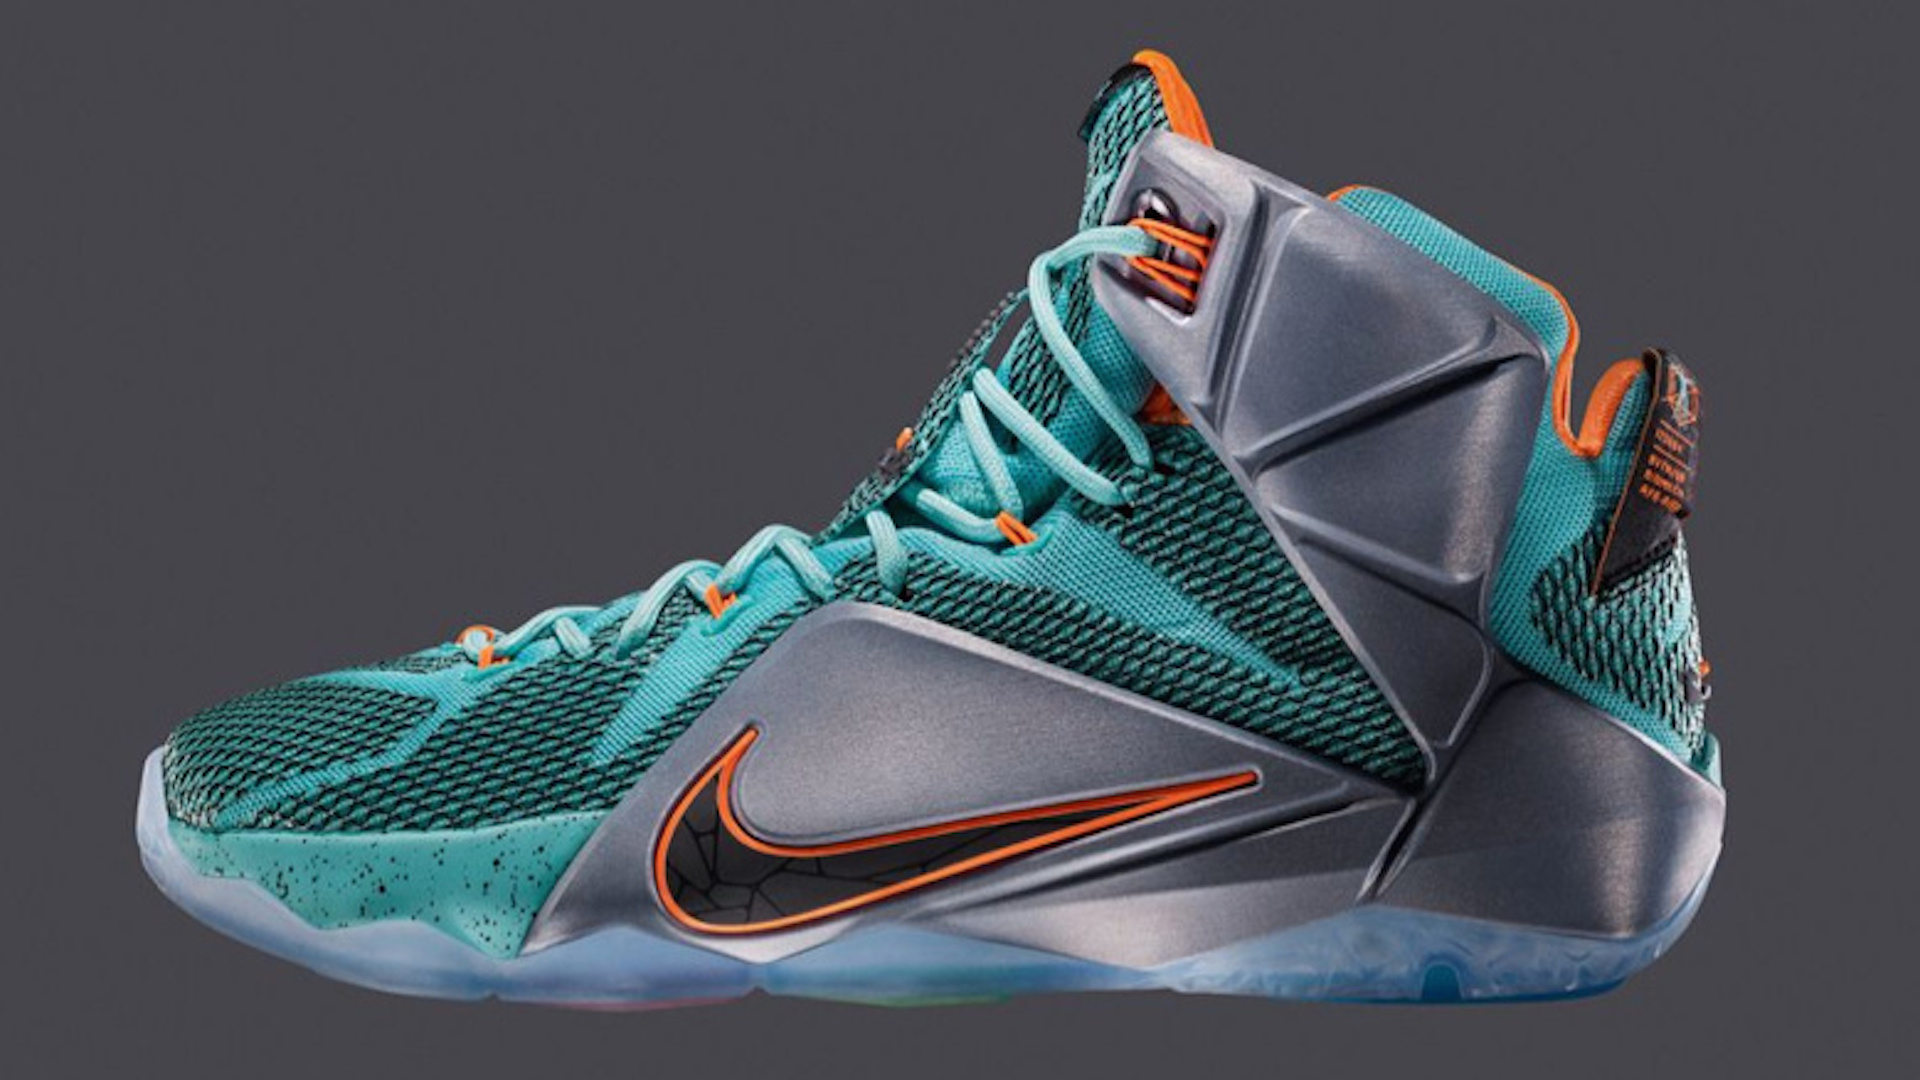 Nike releases newest LeBron James